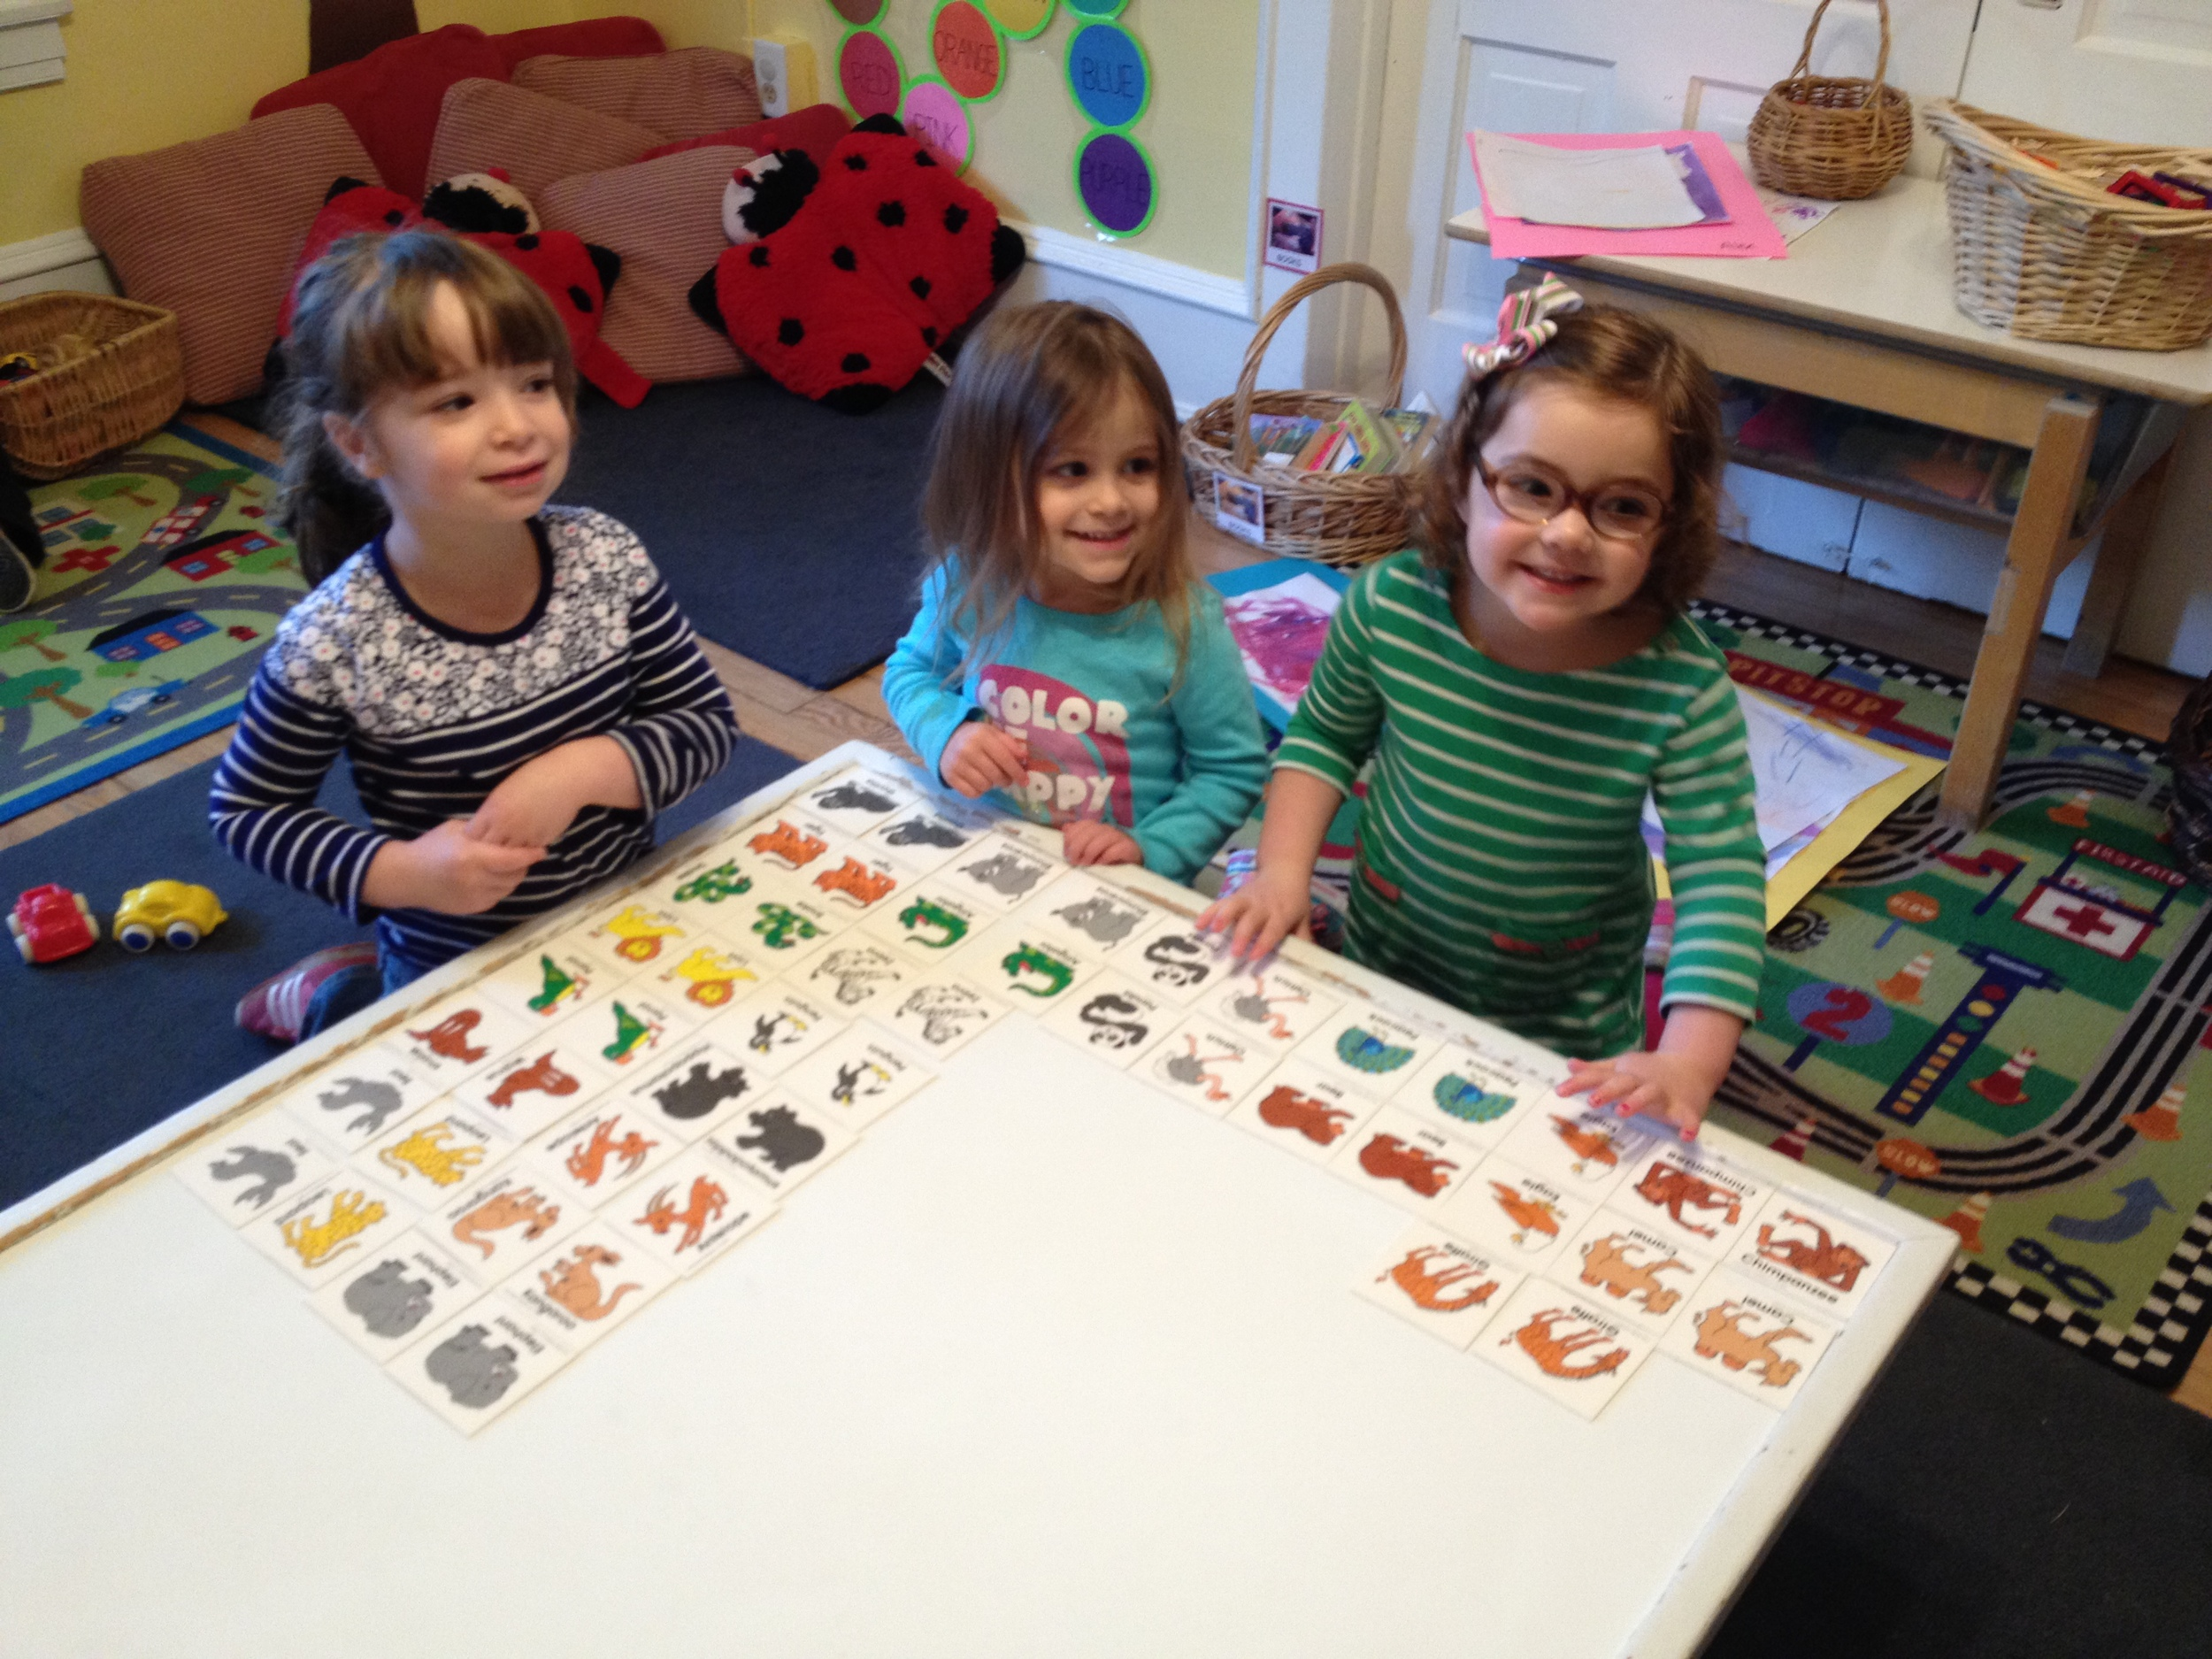 Look, we matched all the zoo animal pairs!